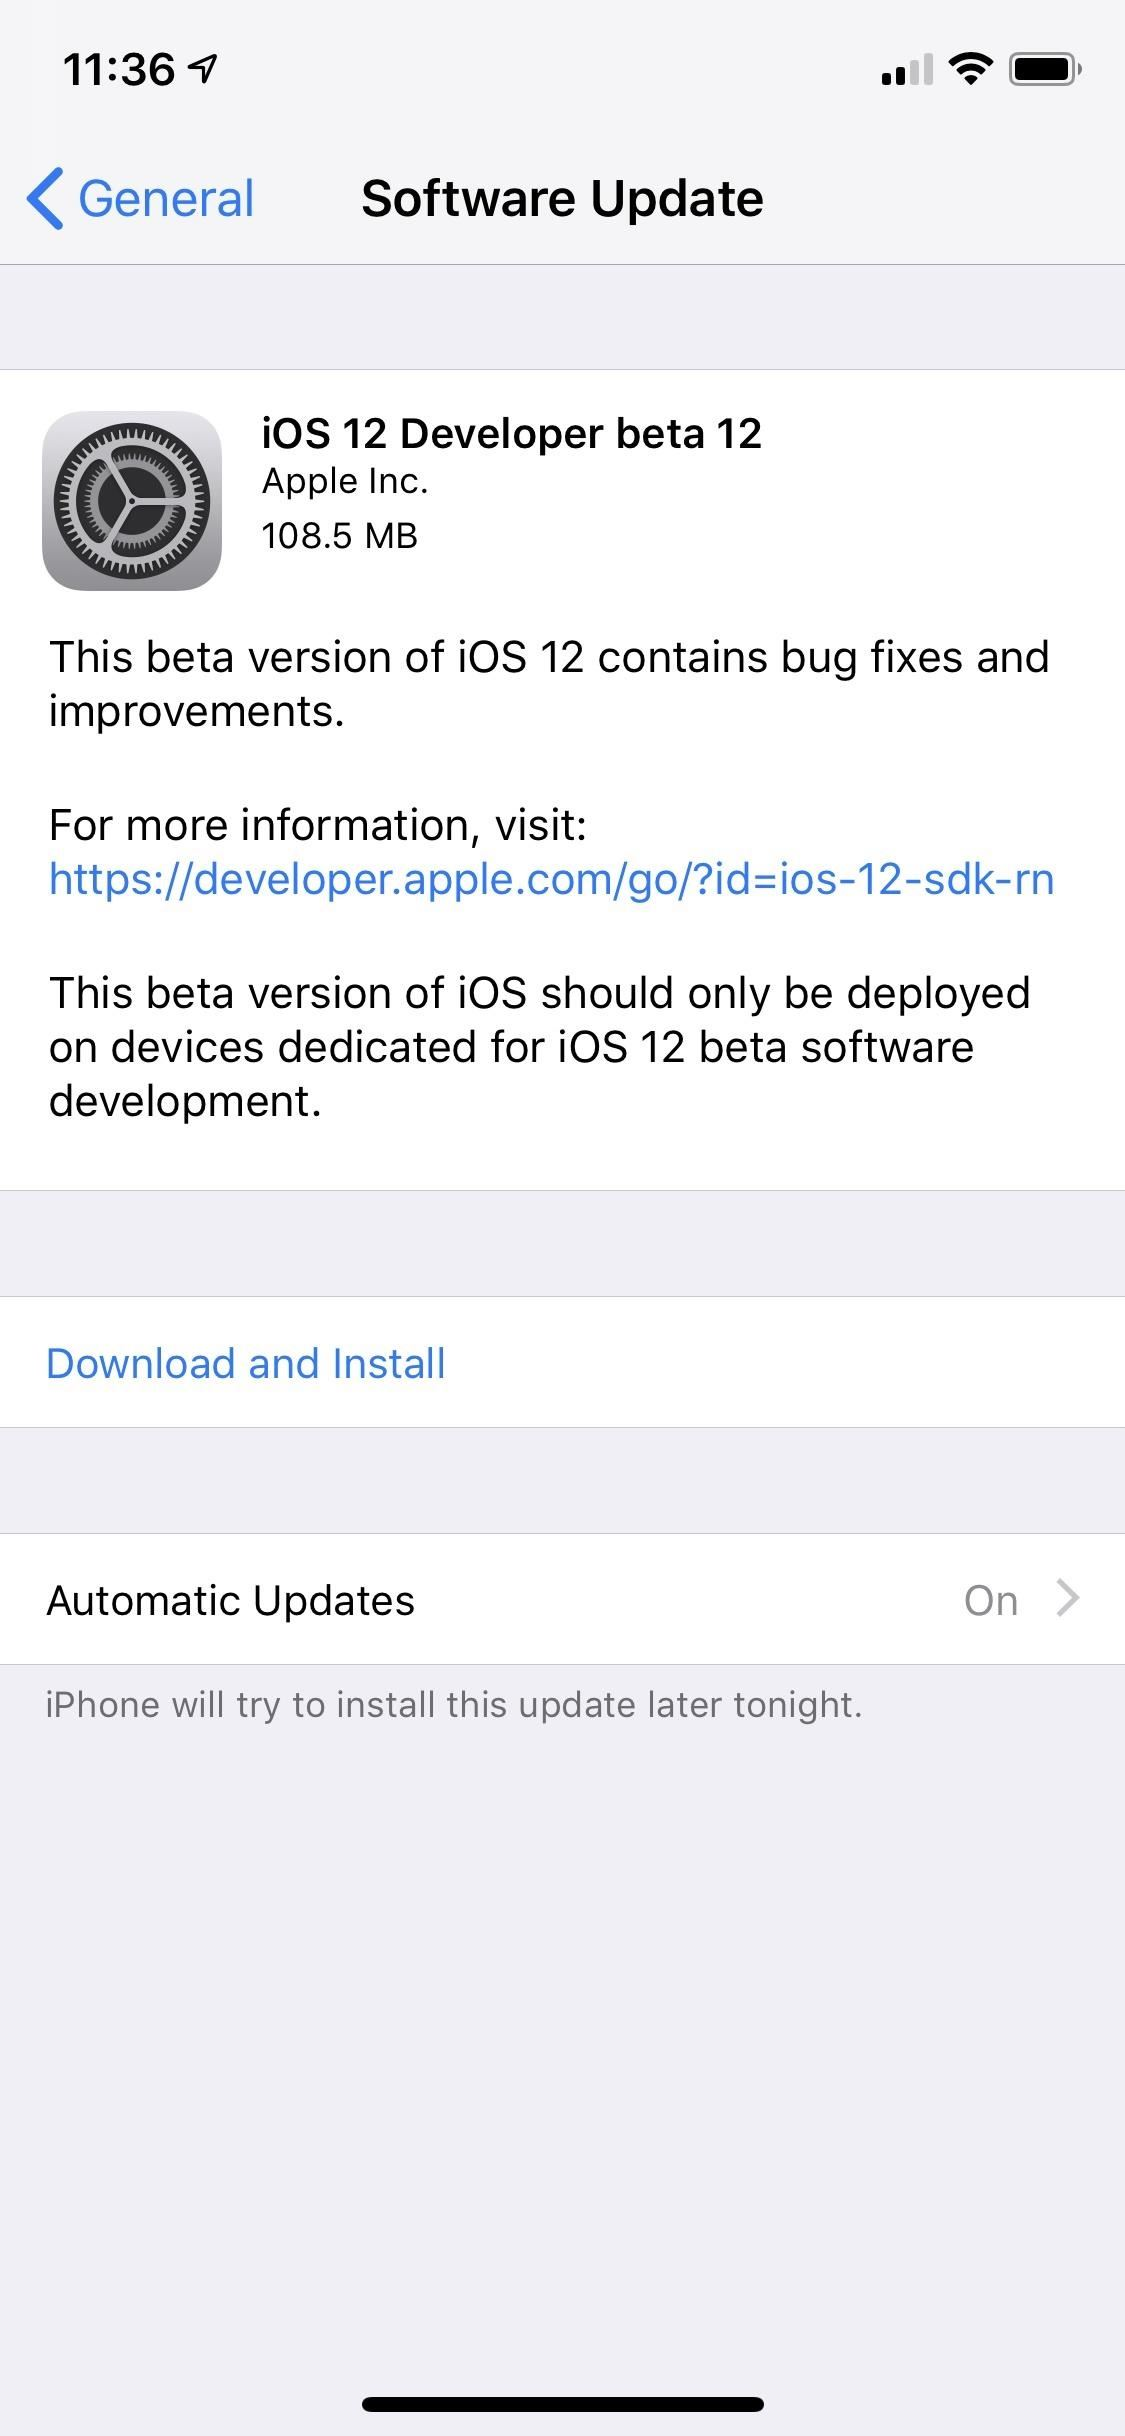 Apple has just released iOS 12 Beta 12 for iPhone for developers, fixes Software Update Bug